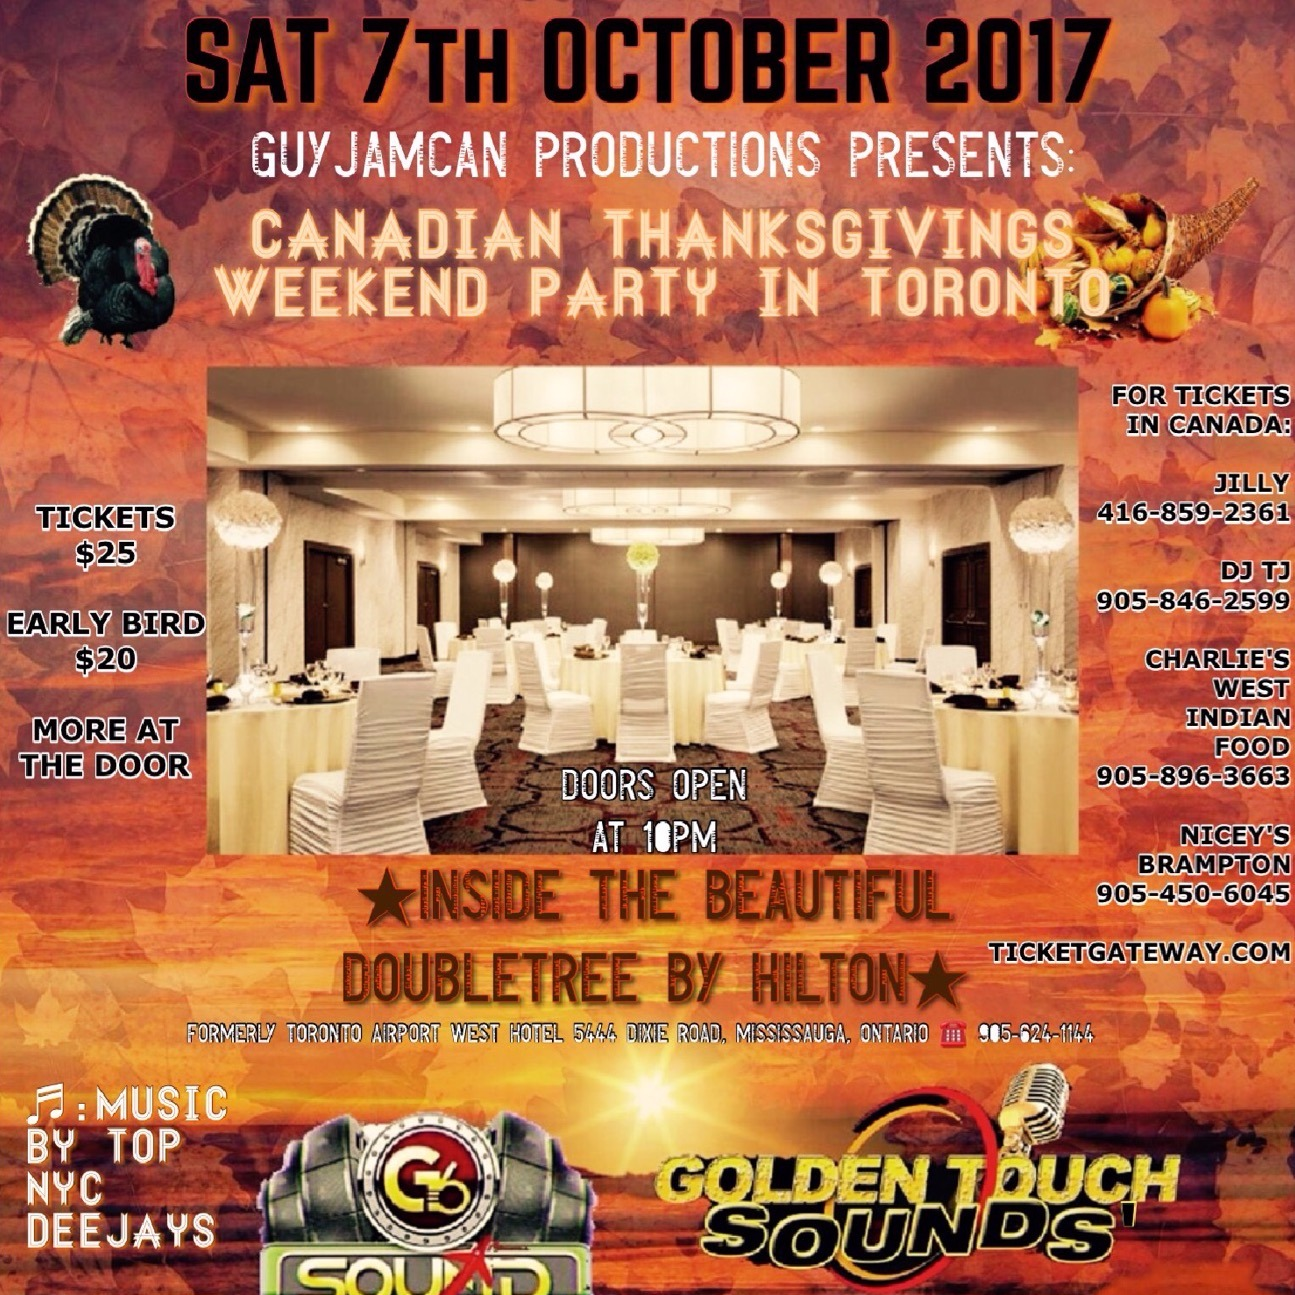 CANADIAN THANKSGIVINGS WEEKEND PARTY IN TORONTO